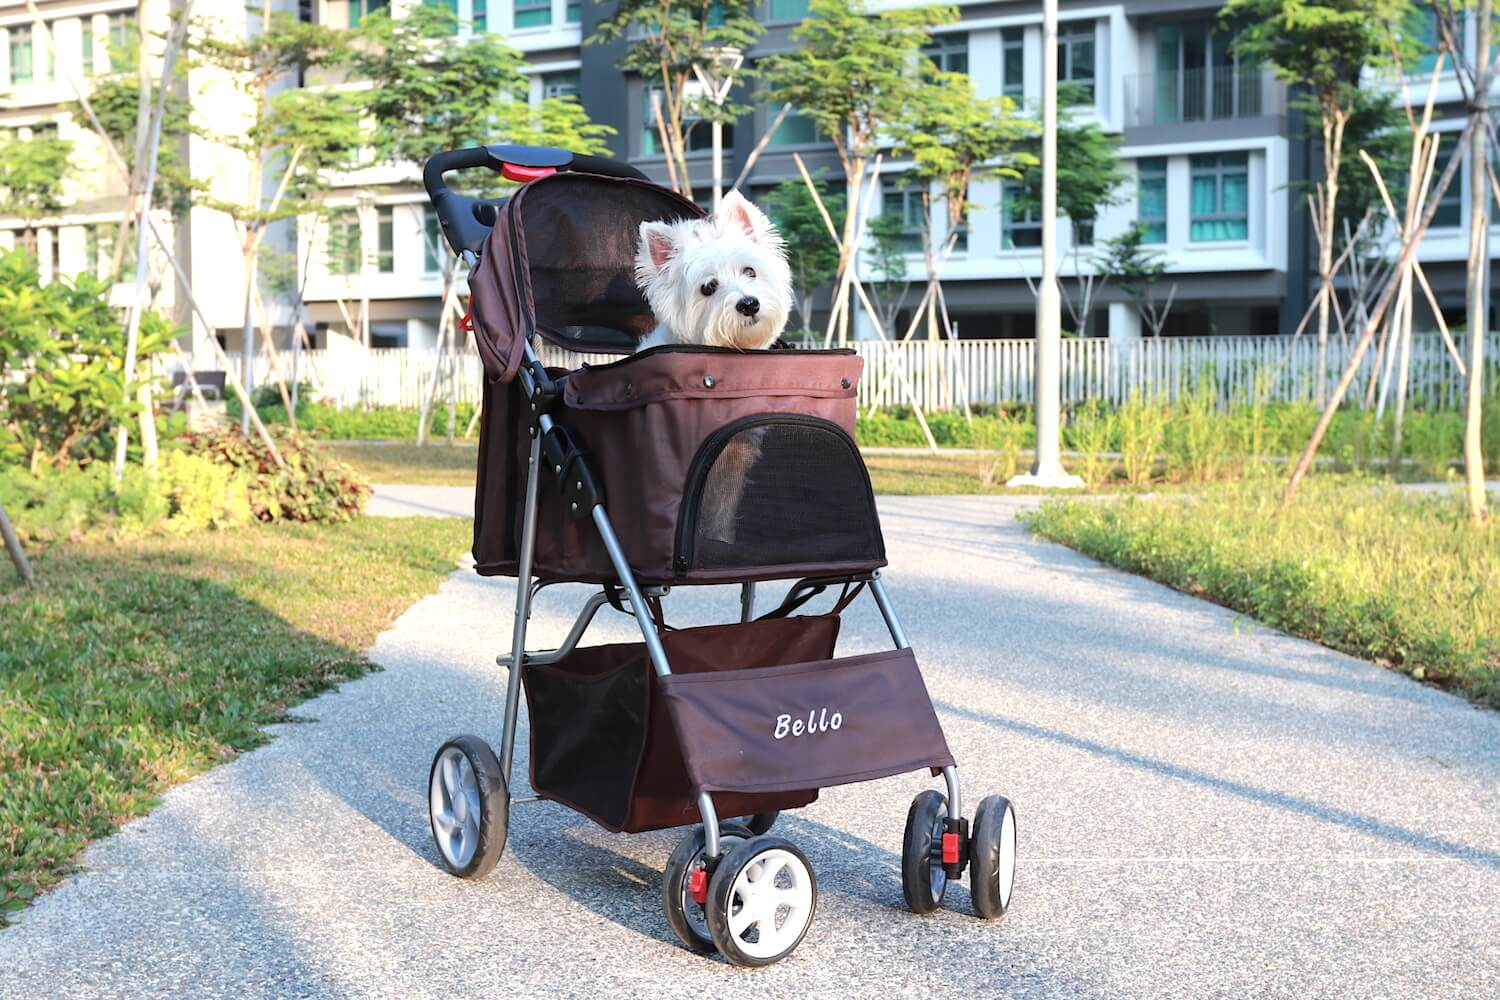 Taobao Bello Stroller Review | Vanillapup